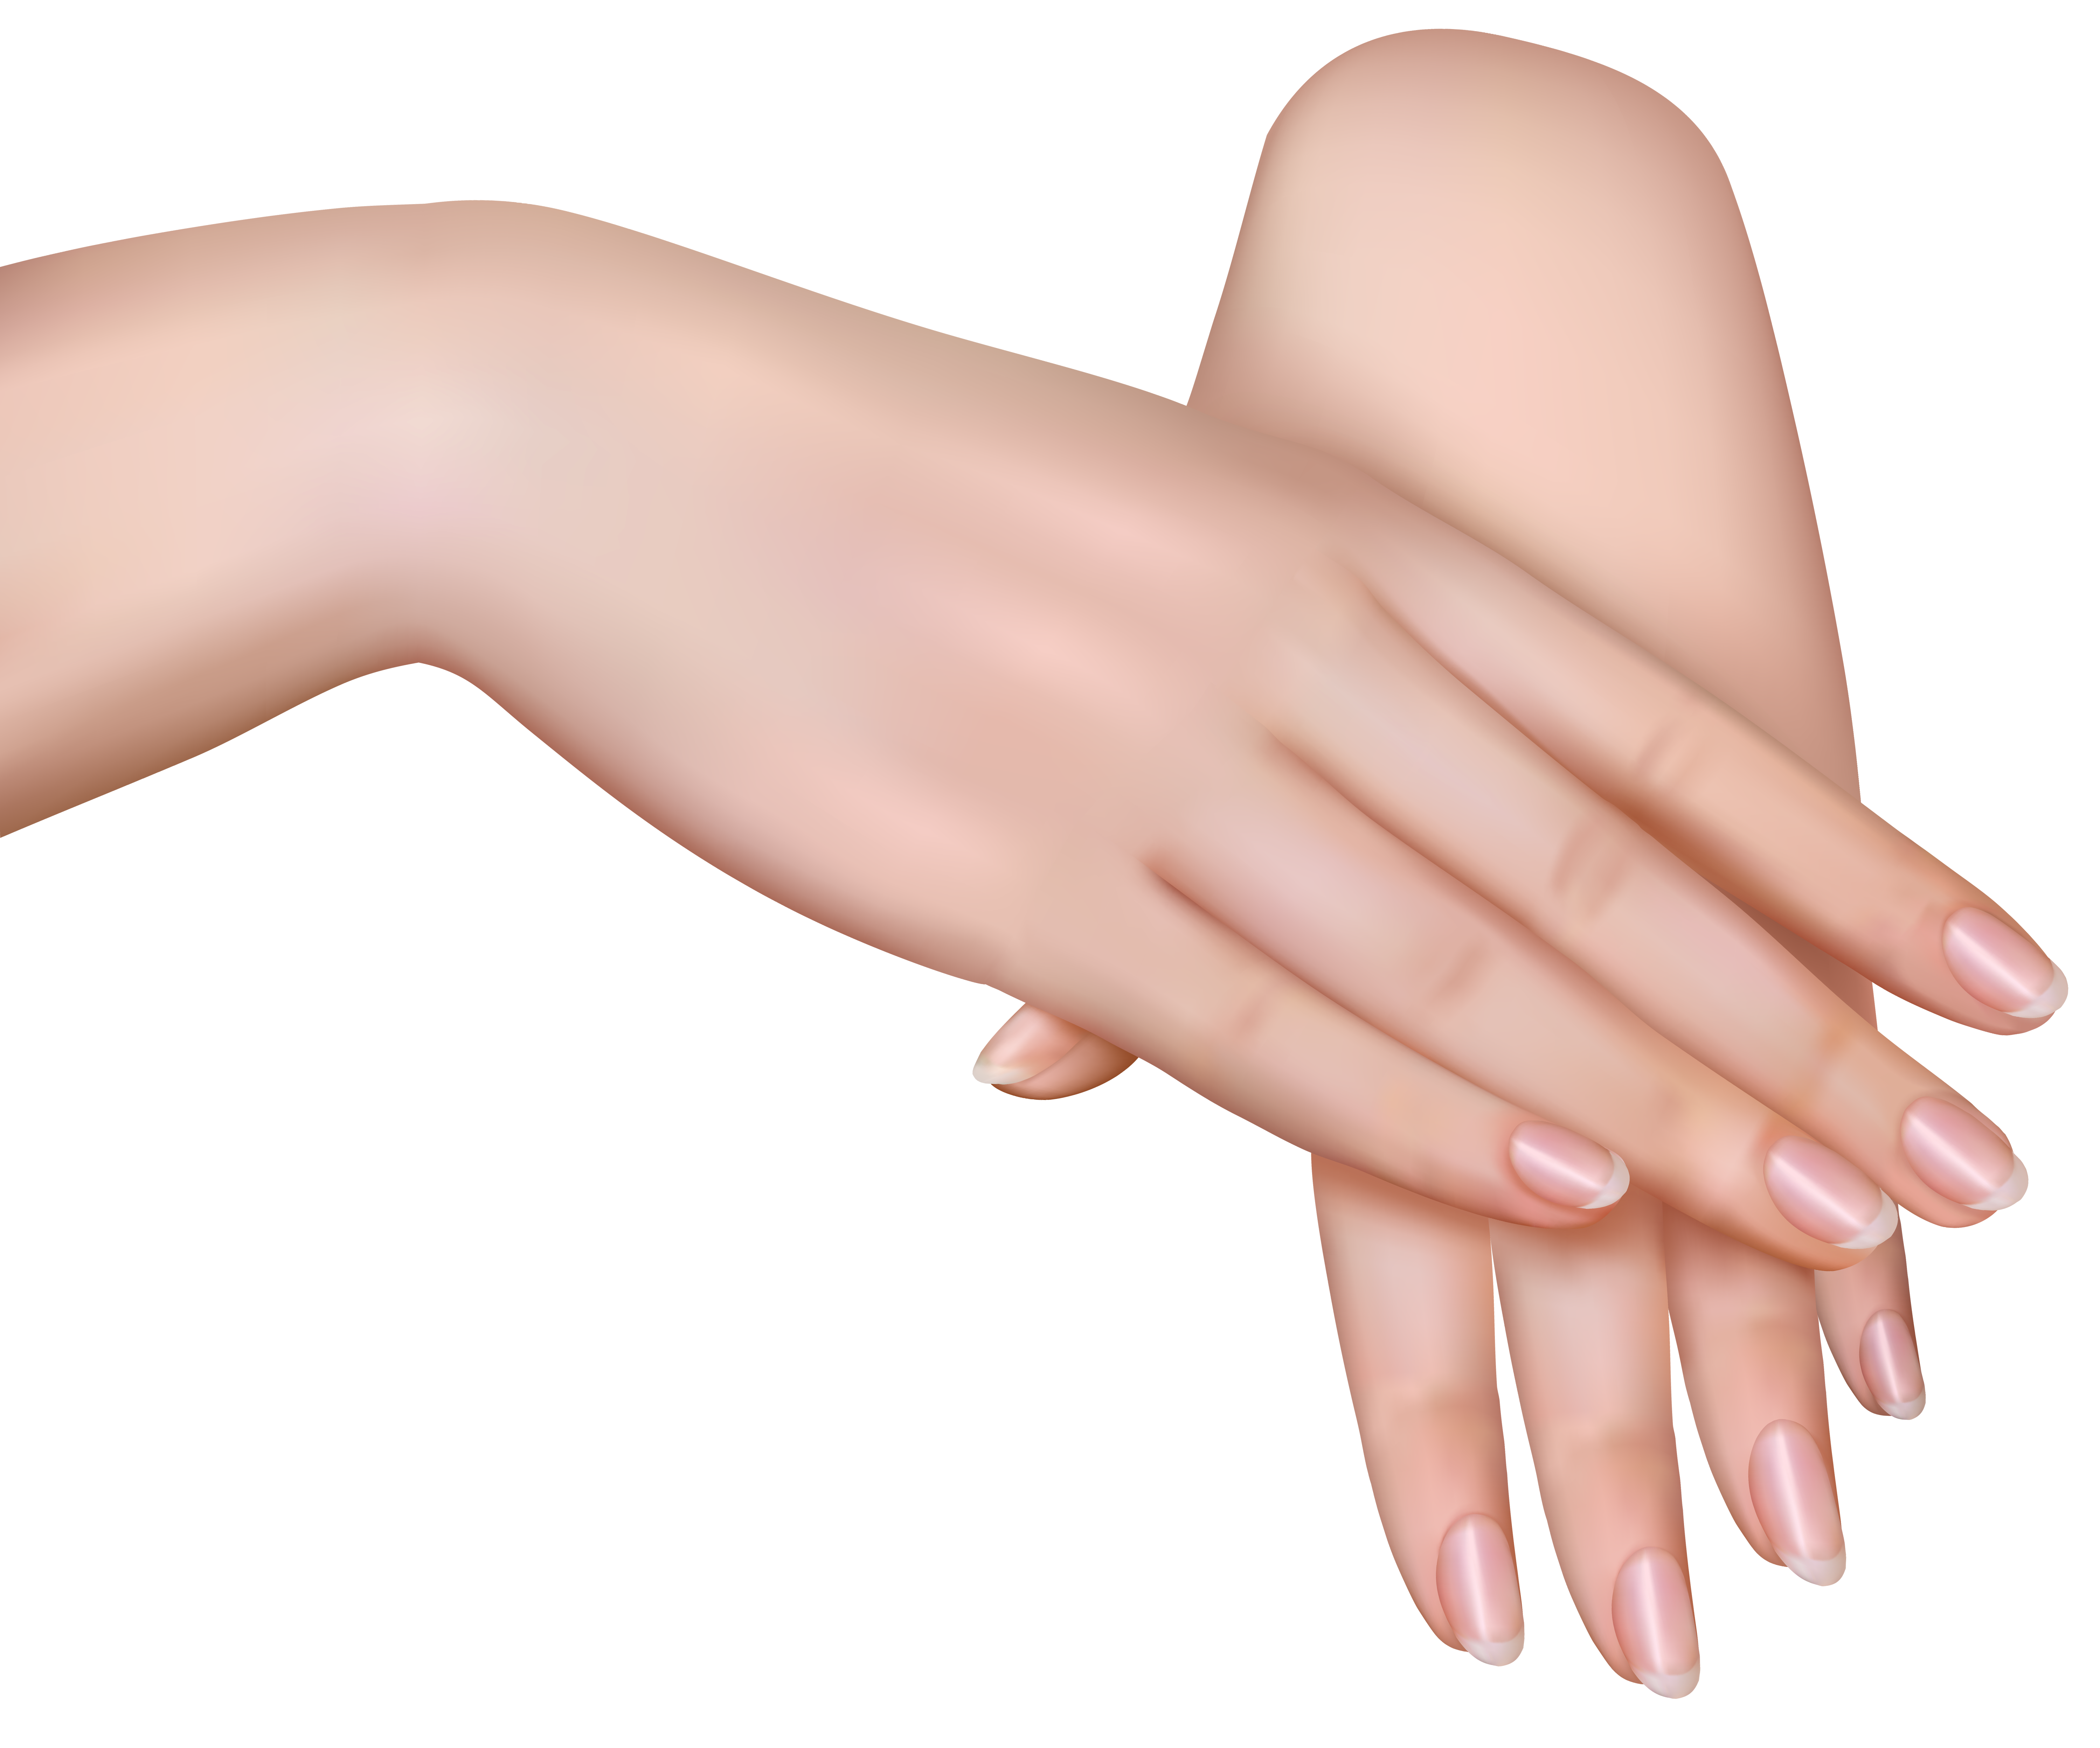 Skin clipart outstretched hand. Female hands png image